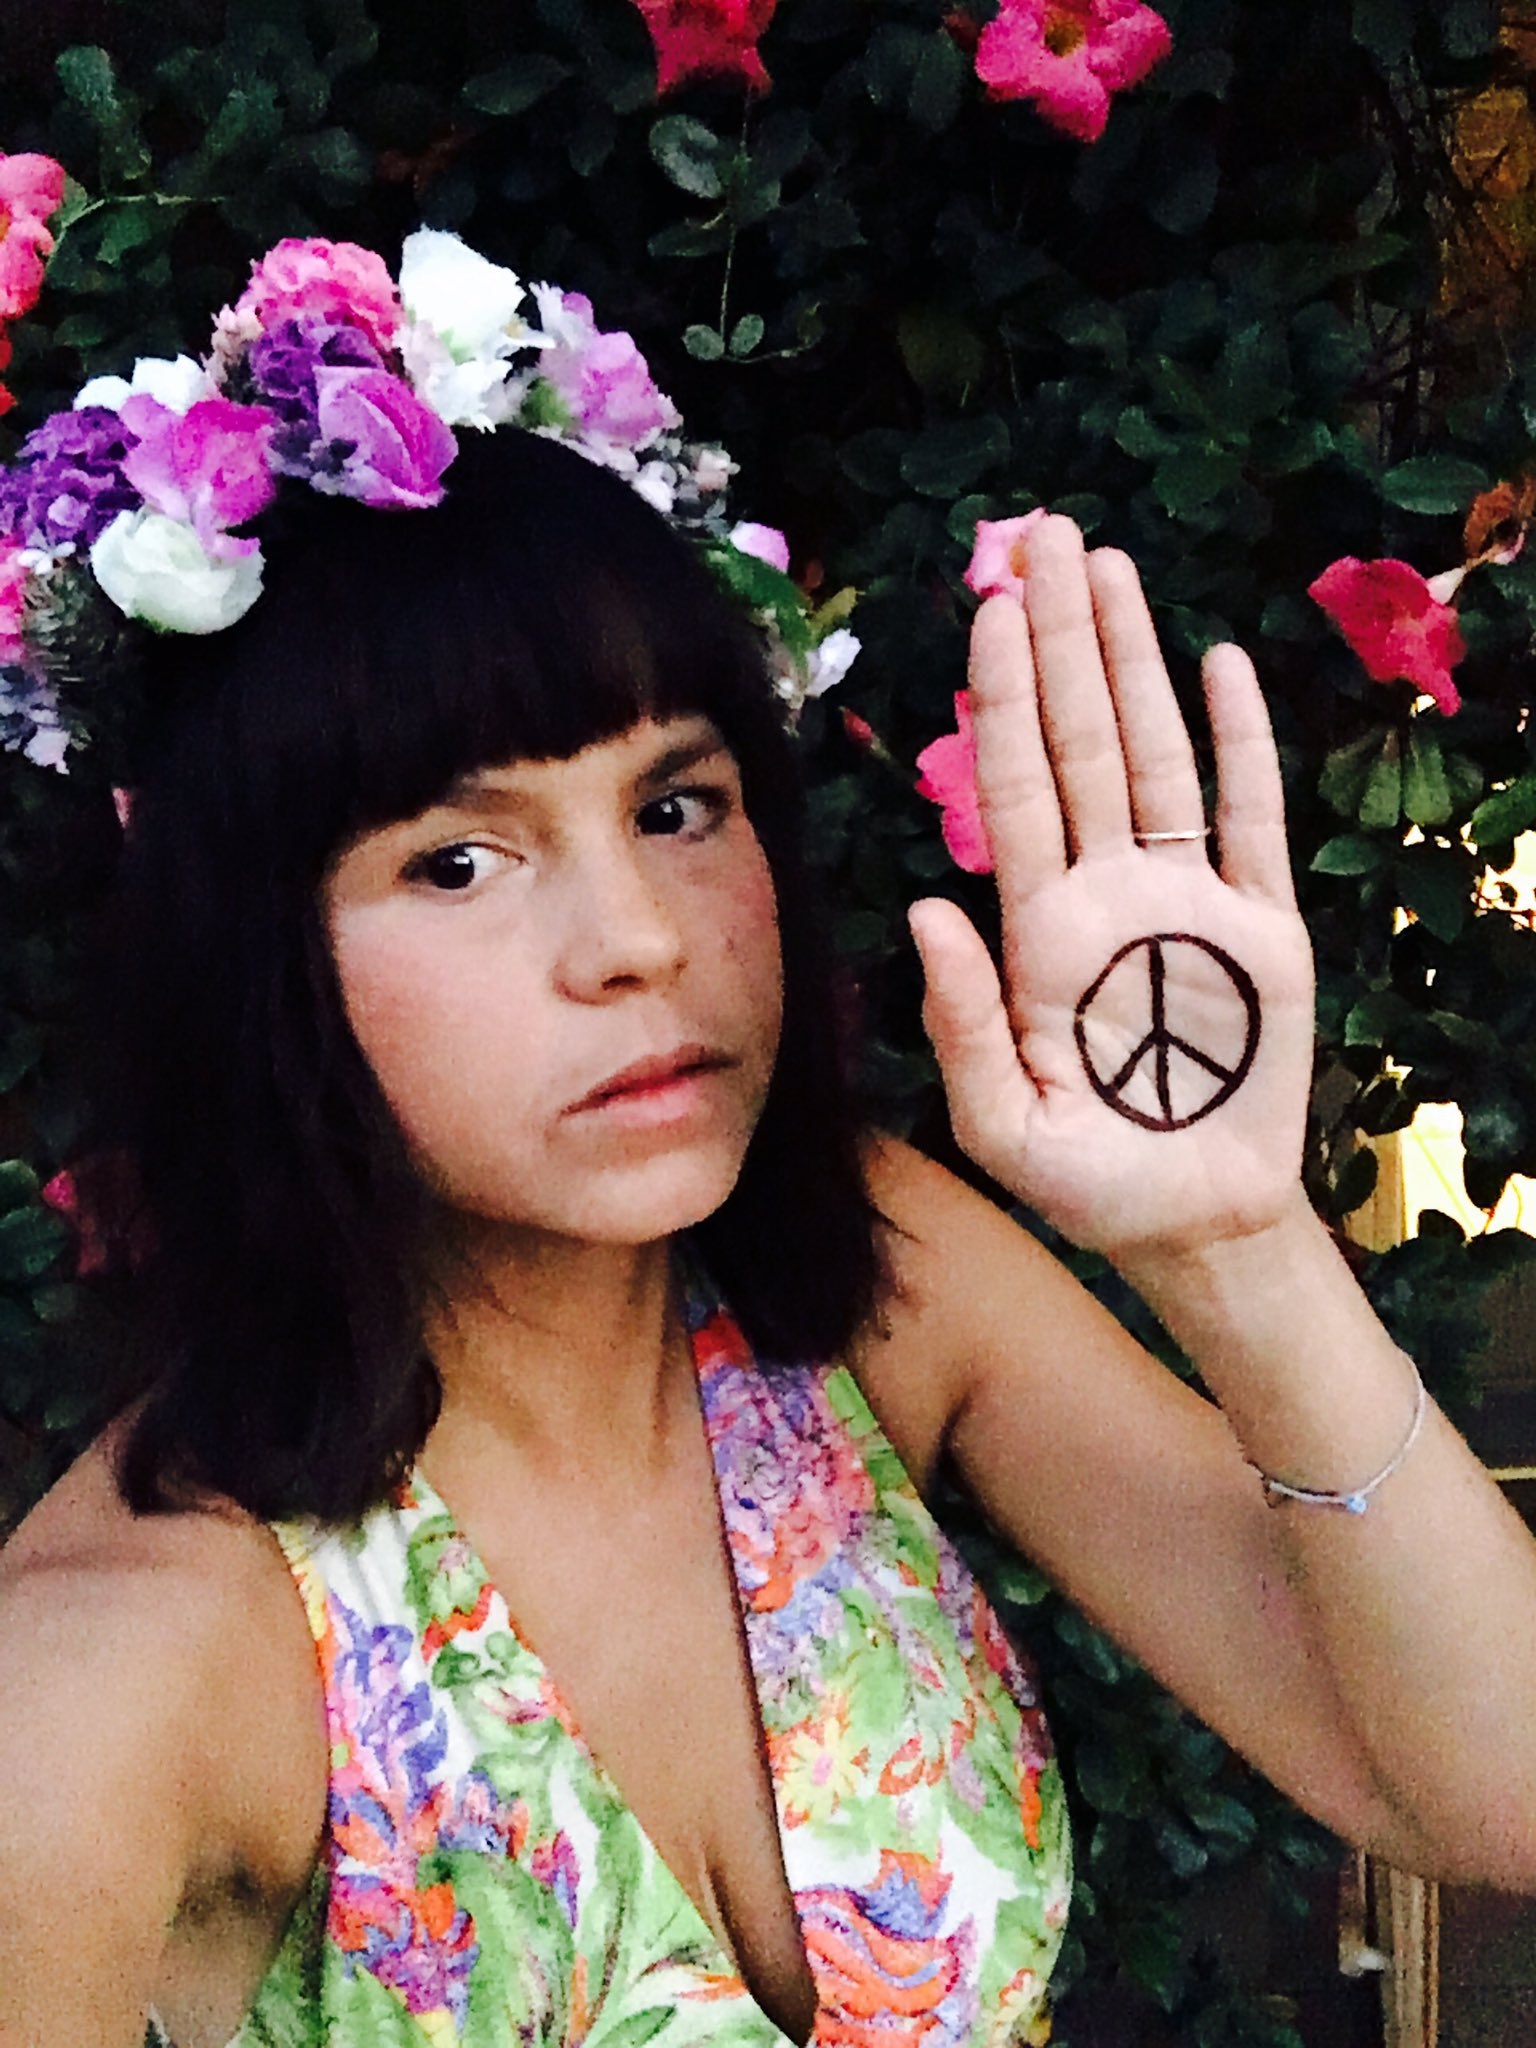 #Peace4Colombia 🙏☮ https://t.co/ObAgBNAqec